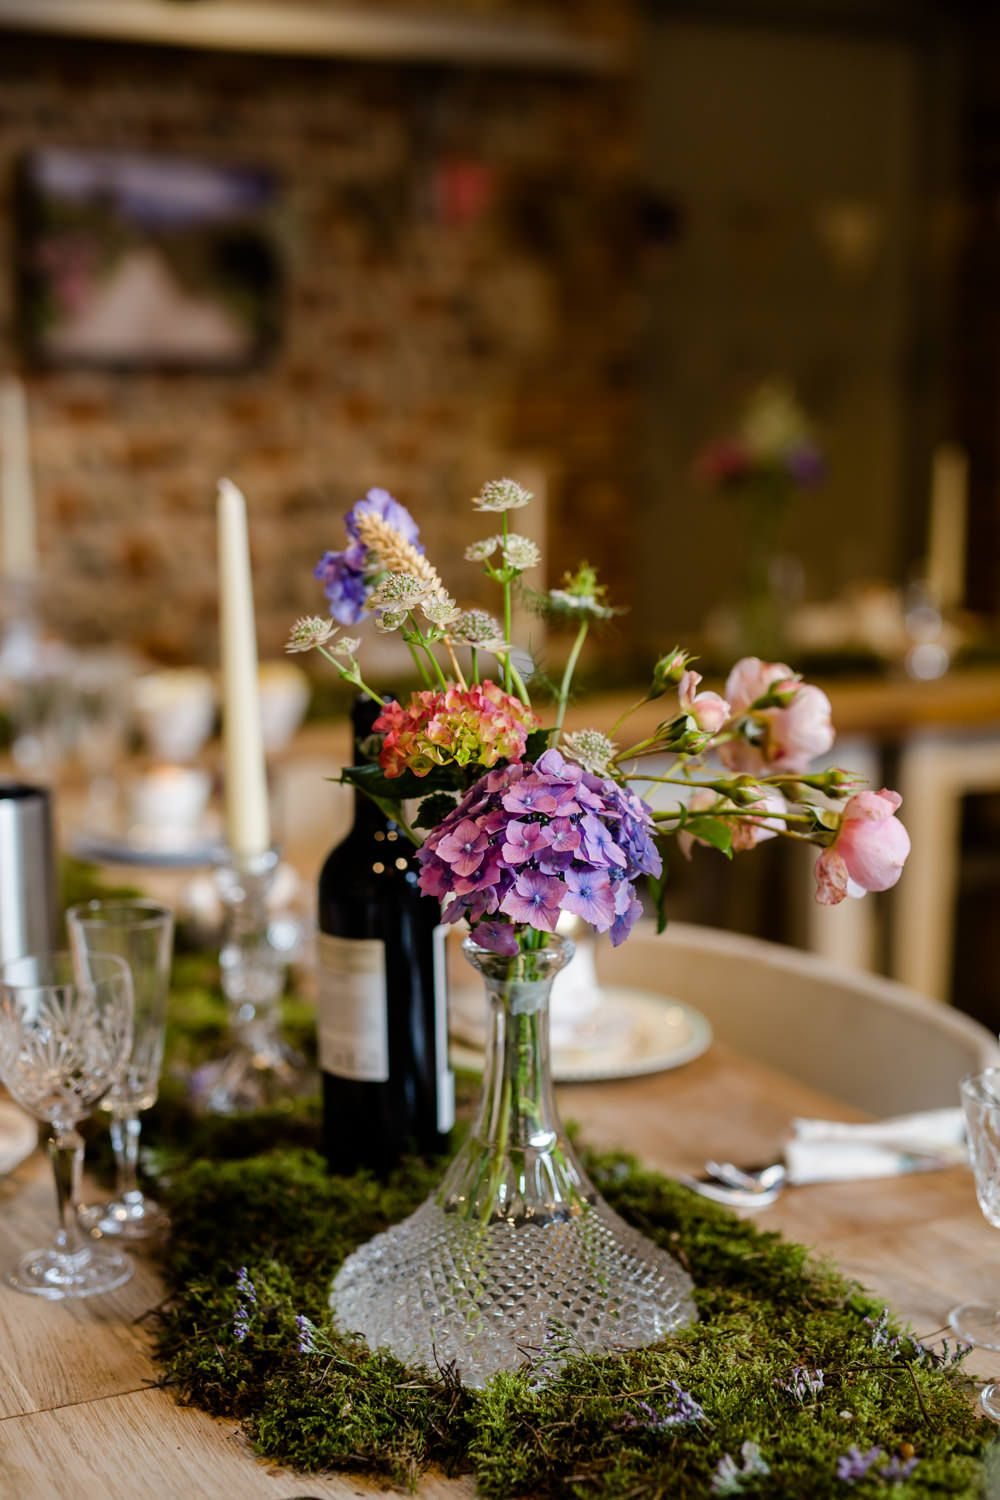 Moss table runner cut glass vase centrepiece back to the garden wedding venue in norfolk enchanted theme justin alexander bridal gown pastel also with